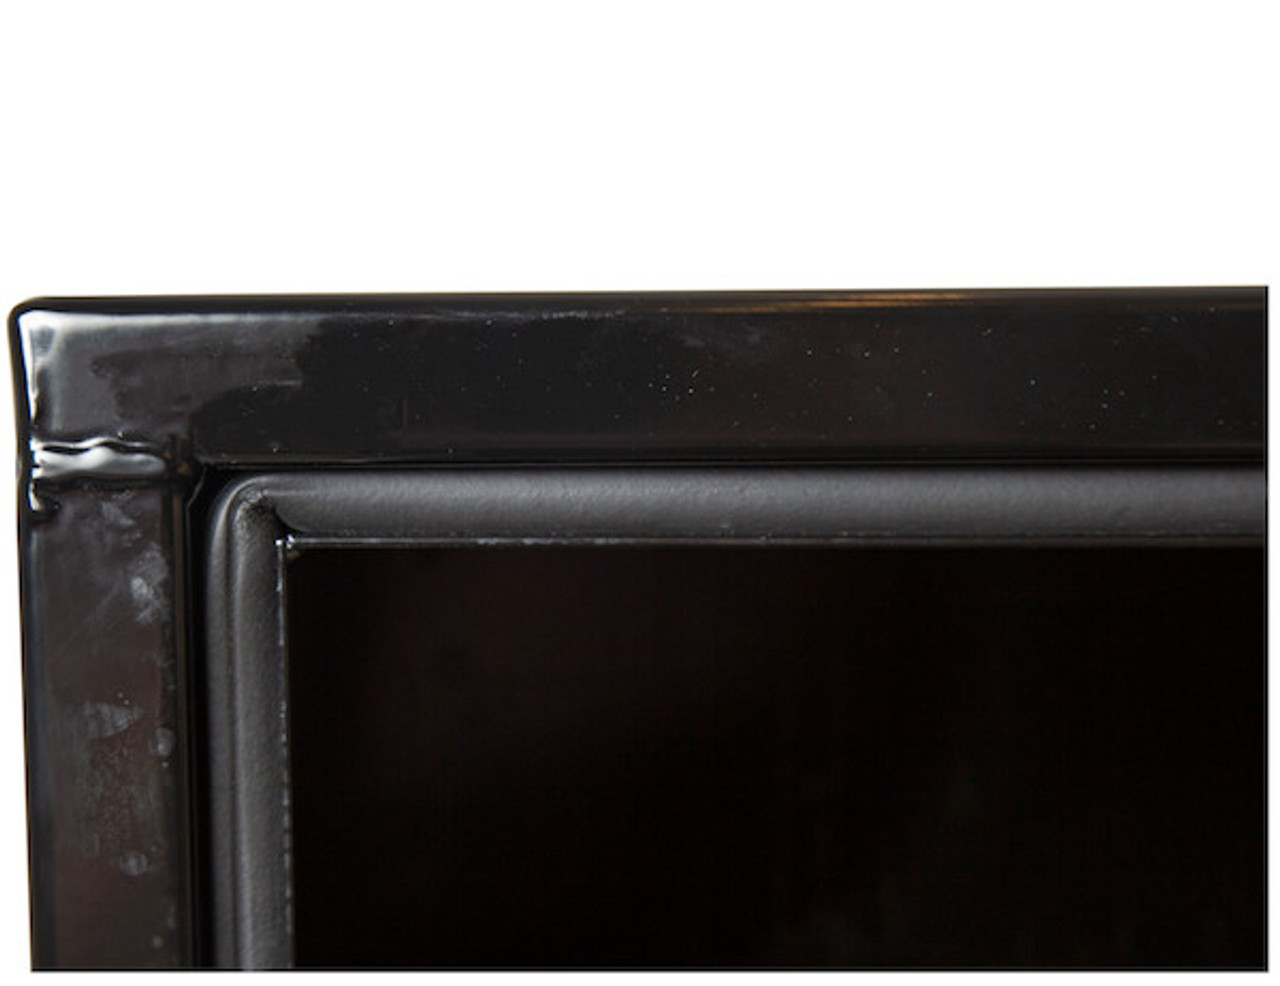 """1702103 BUYERS PRODUCTS BLACK STEEL UNDERBODY TRUCK TOOLBOX WITH PADDLE LATCH 18""""HX18""""DX30""""W"""